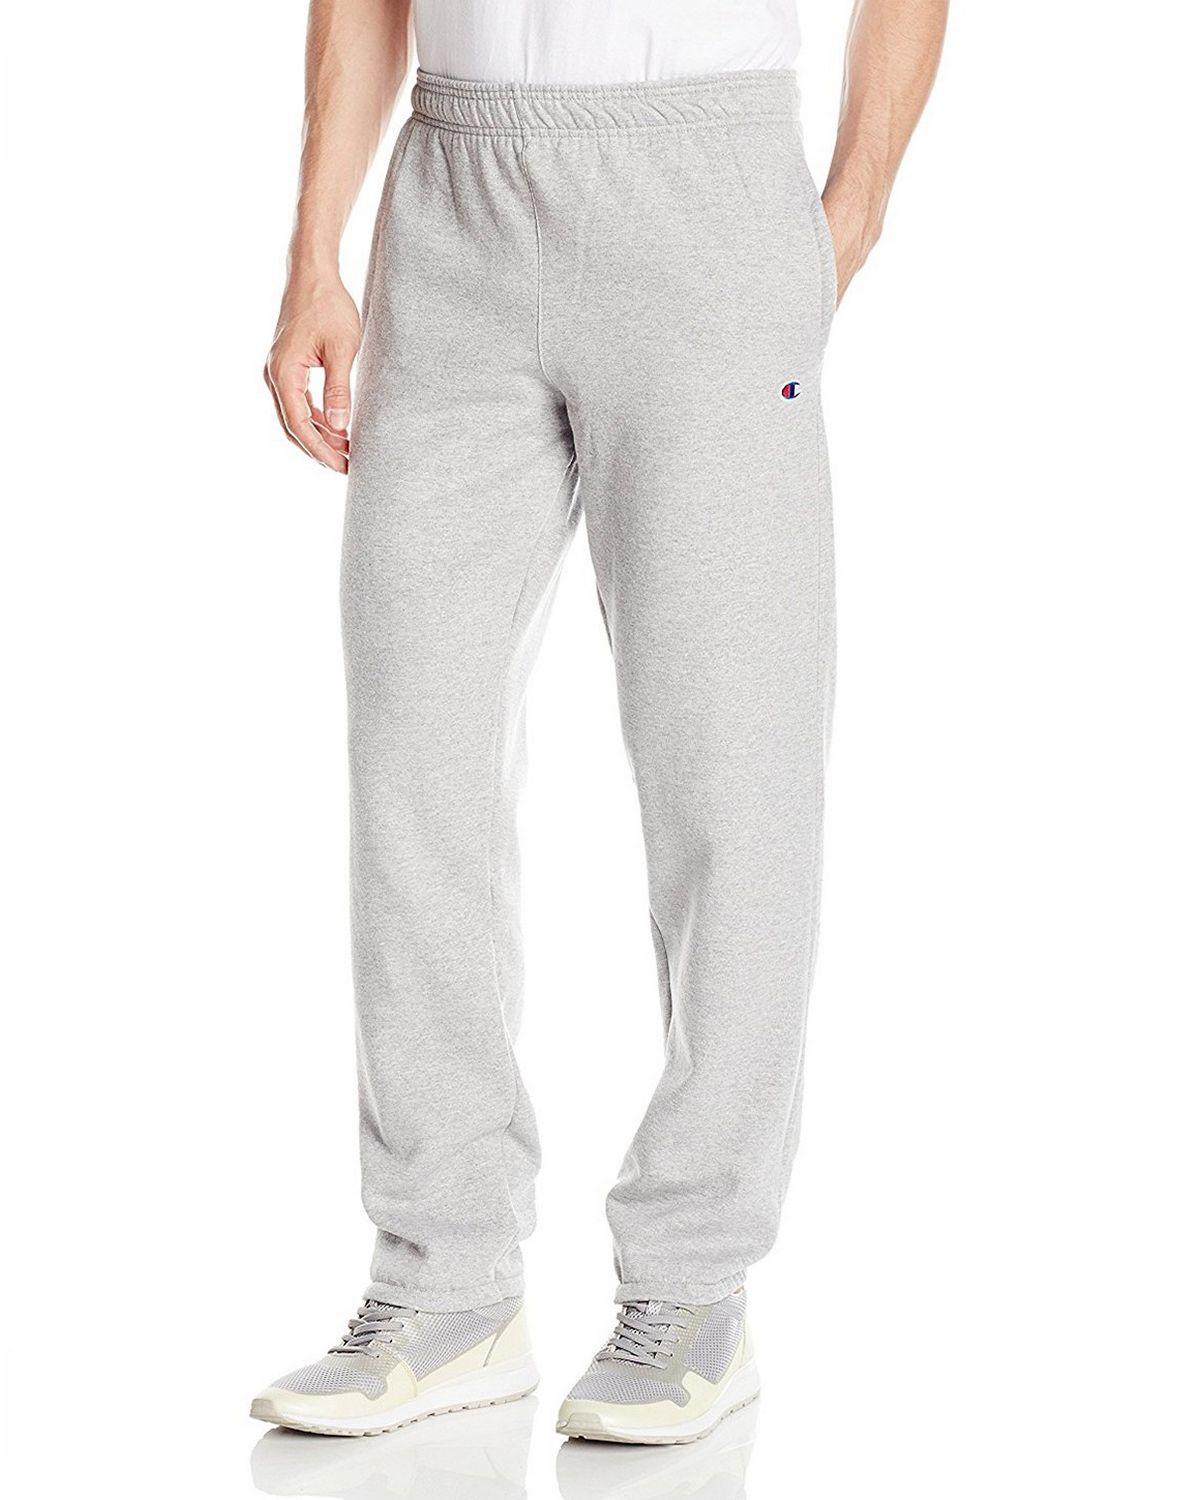 Champion P0894 Mens Powerblend Fleece Pants - Black - M P0894